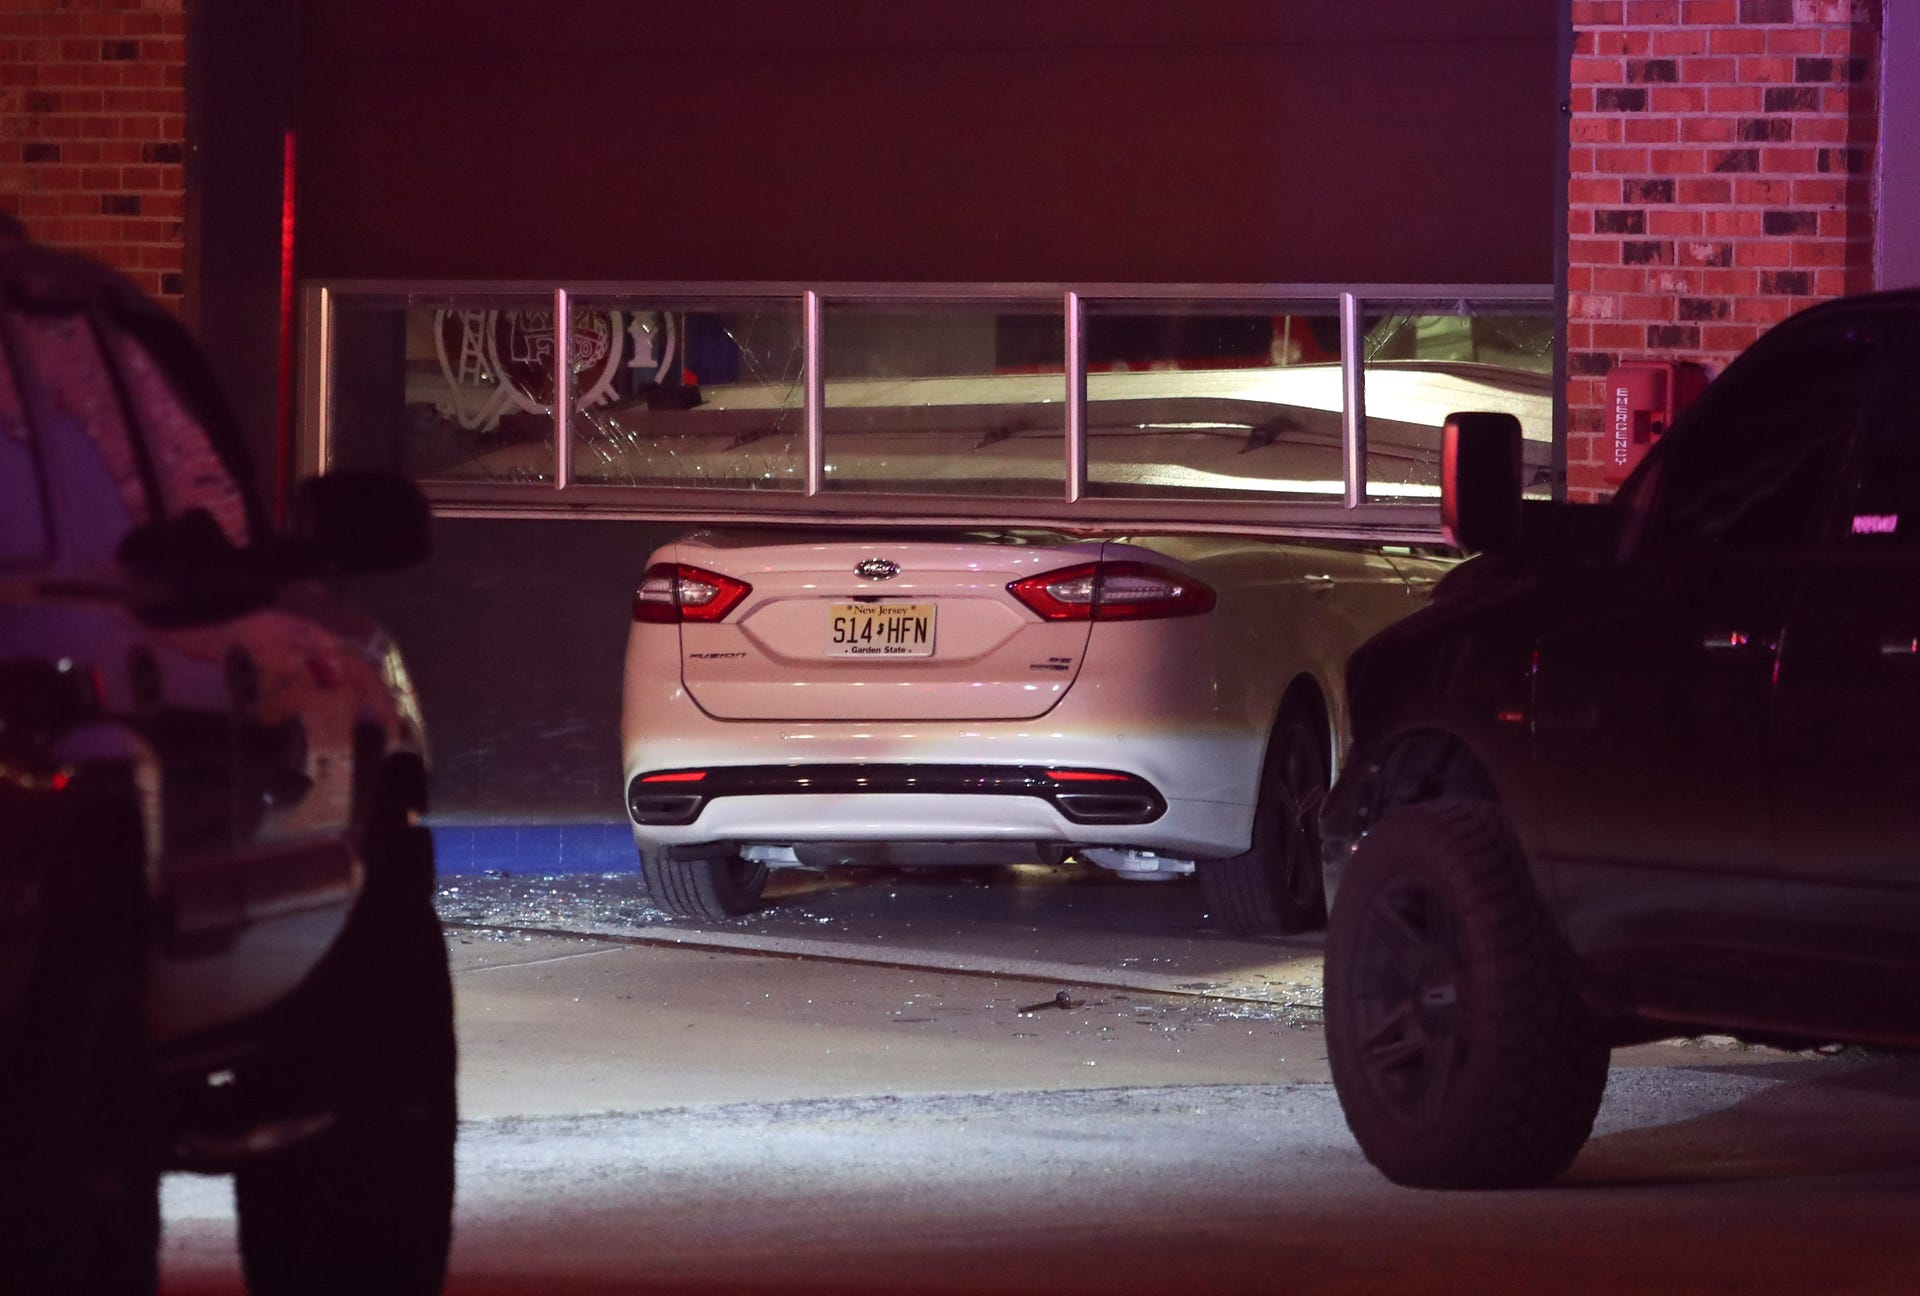 Car Plunges Into Fire Station In Dupont Highway Wreck